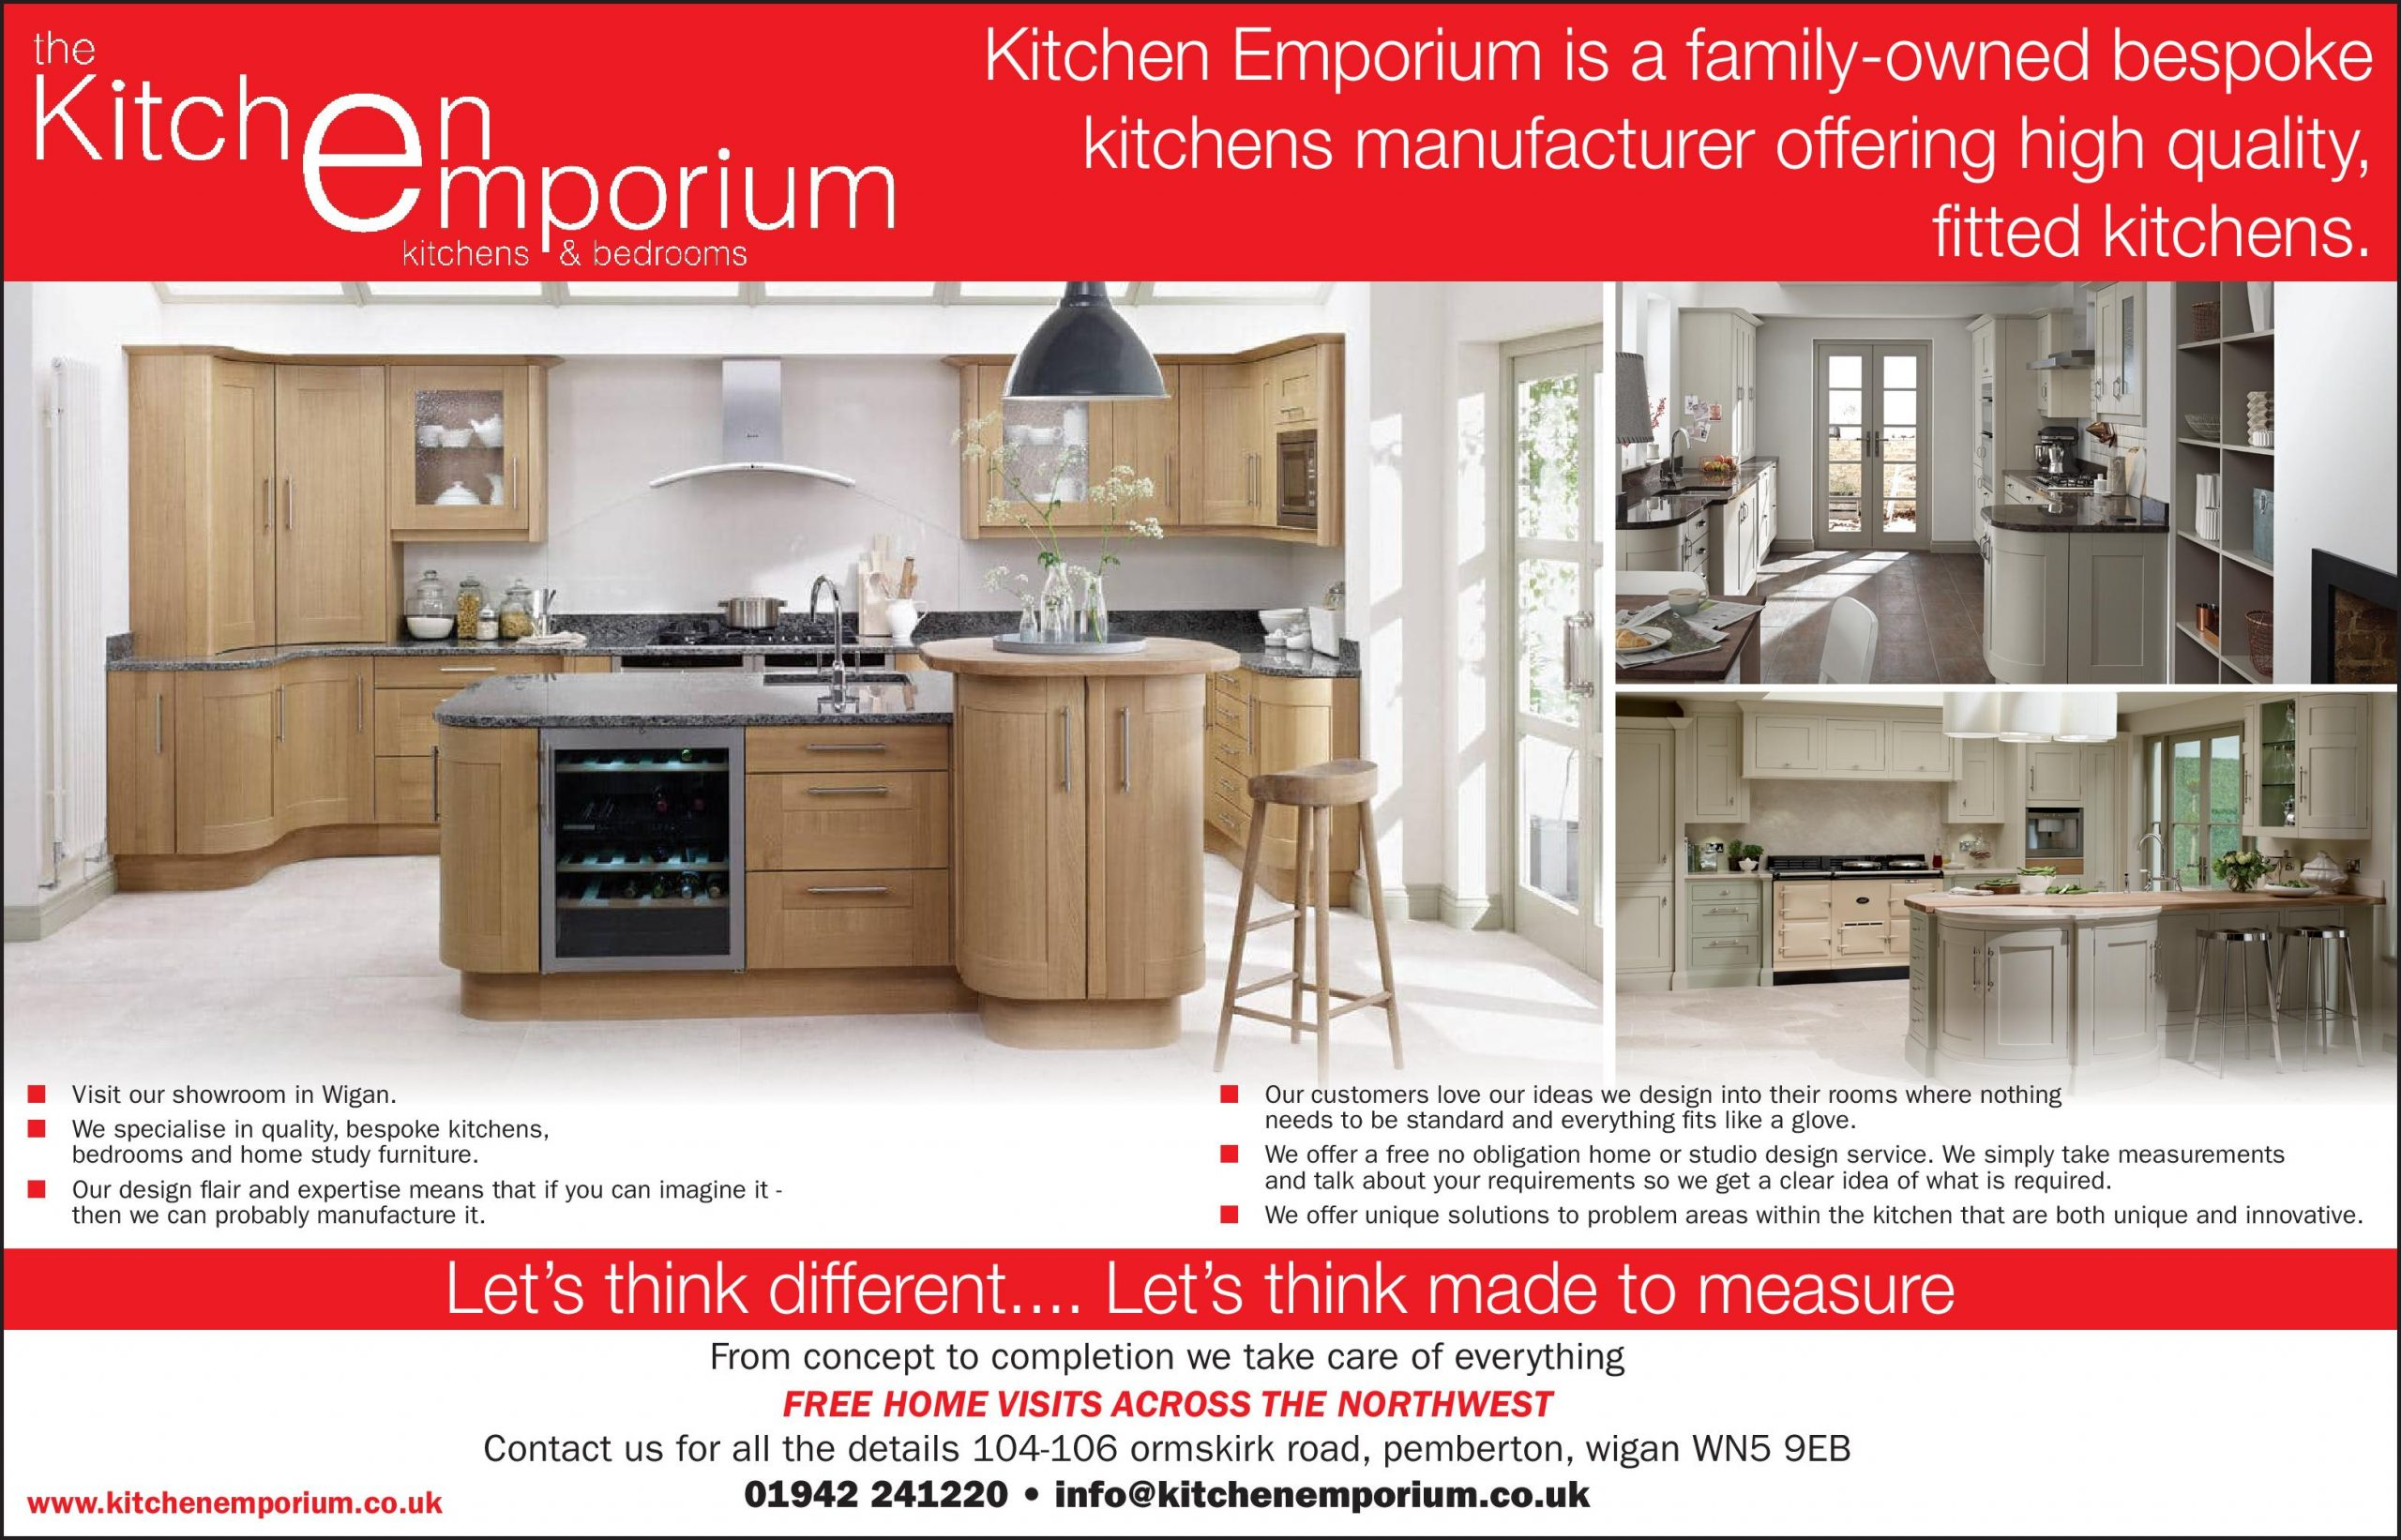 Latest Offers at Kitchen Emporium